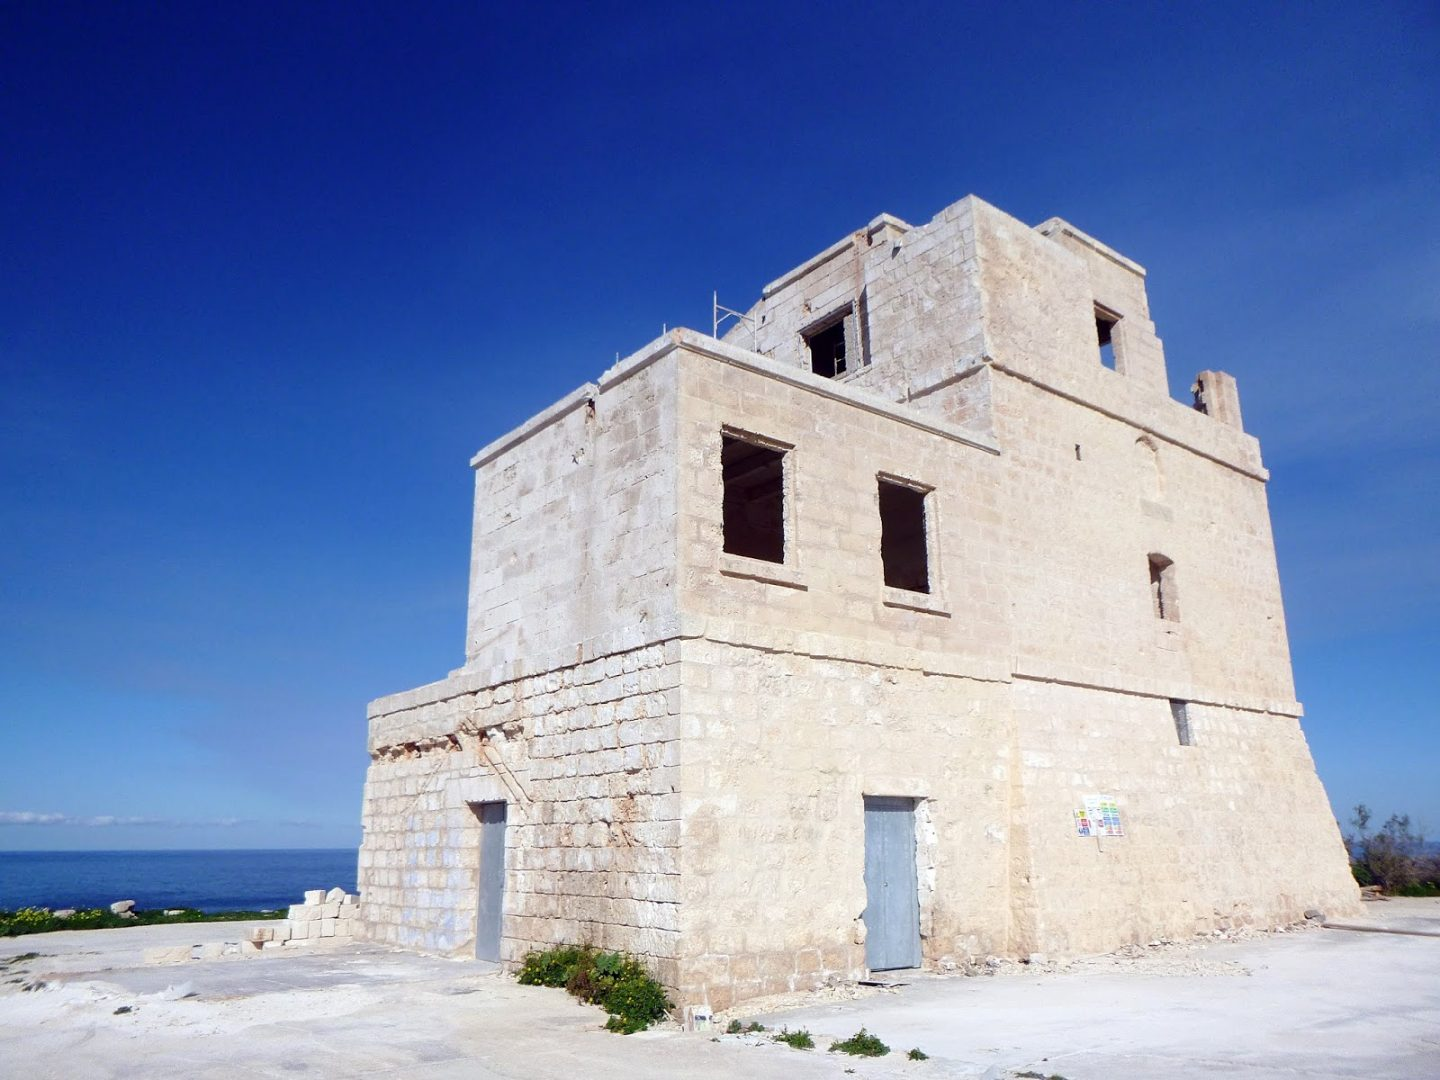 The White Tower in Malta